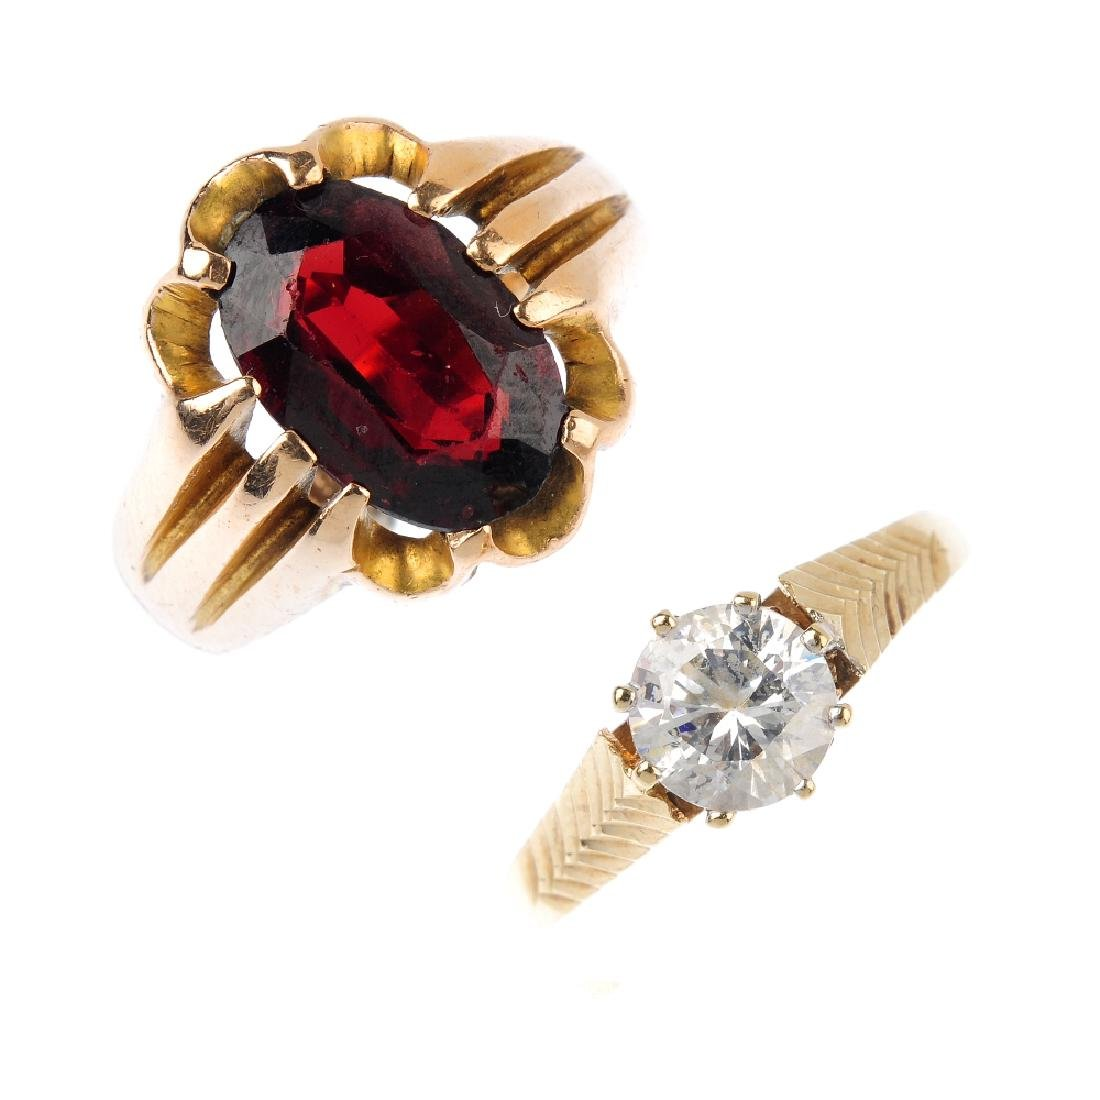 Four 9ct gold gem-set rings. To include a diamond dress